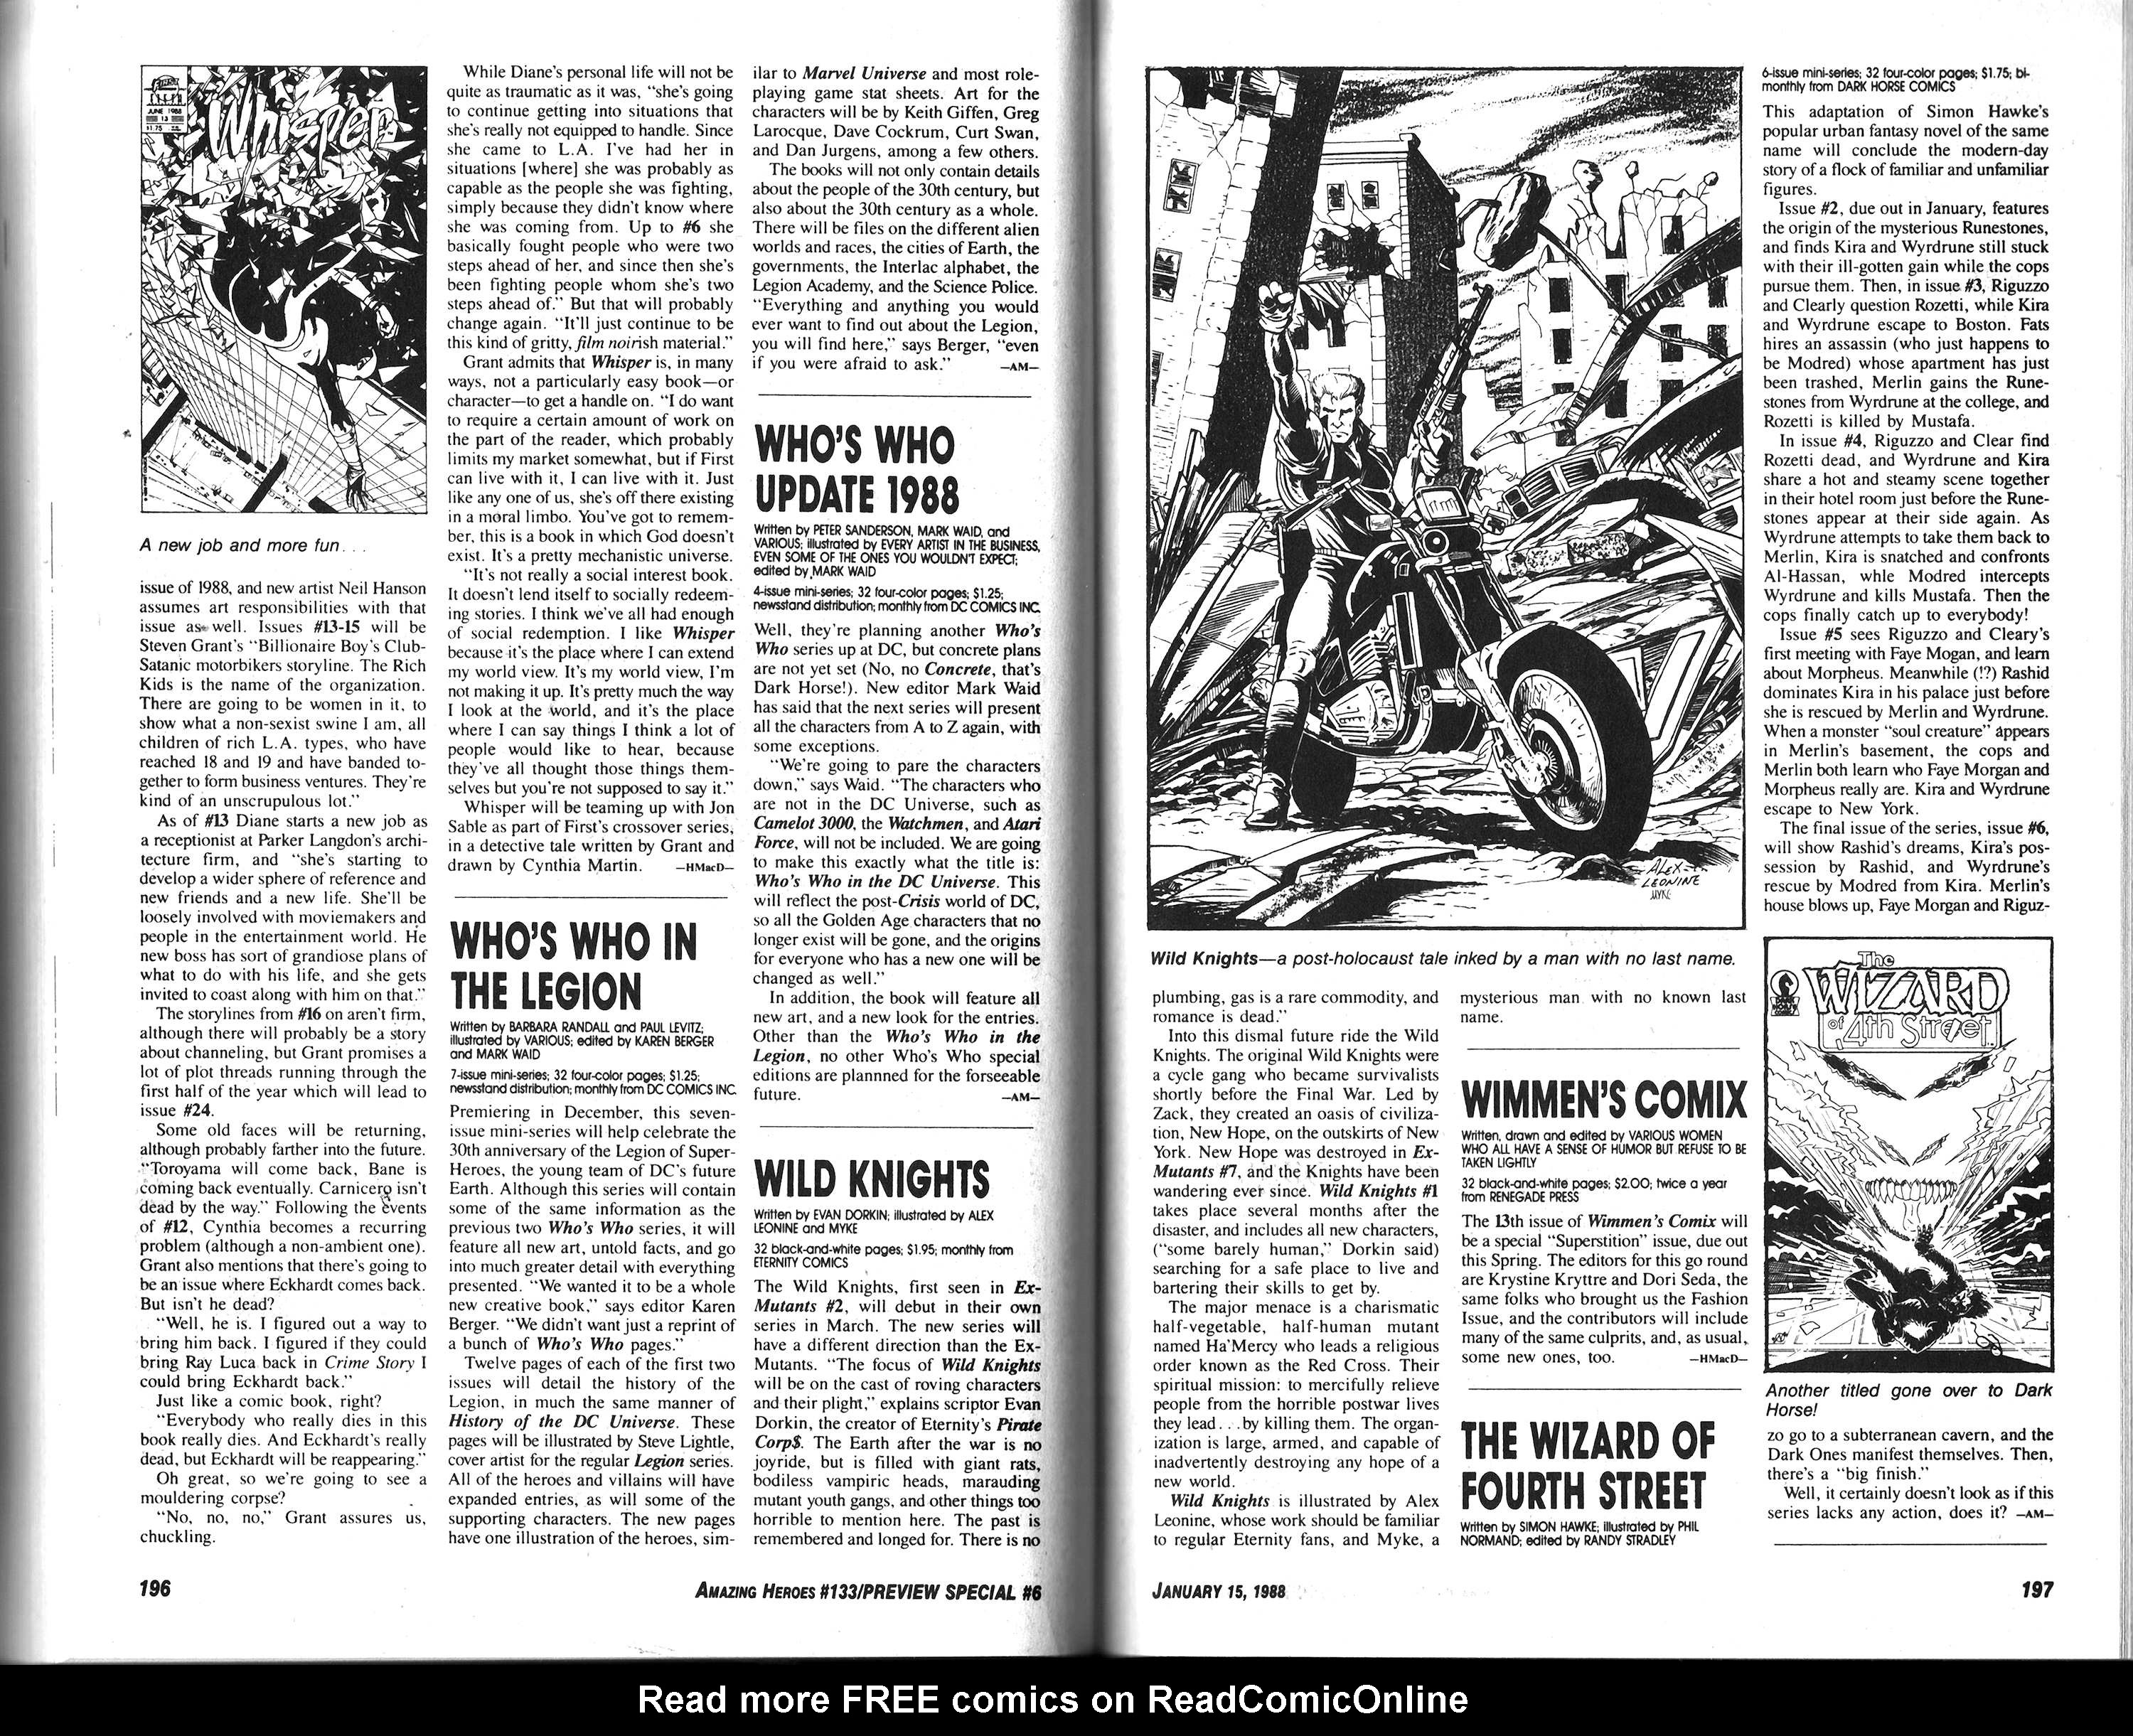 Read online Amazing Heroes comic -  Issue #133 - 100